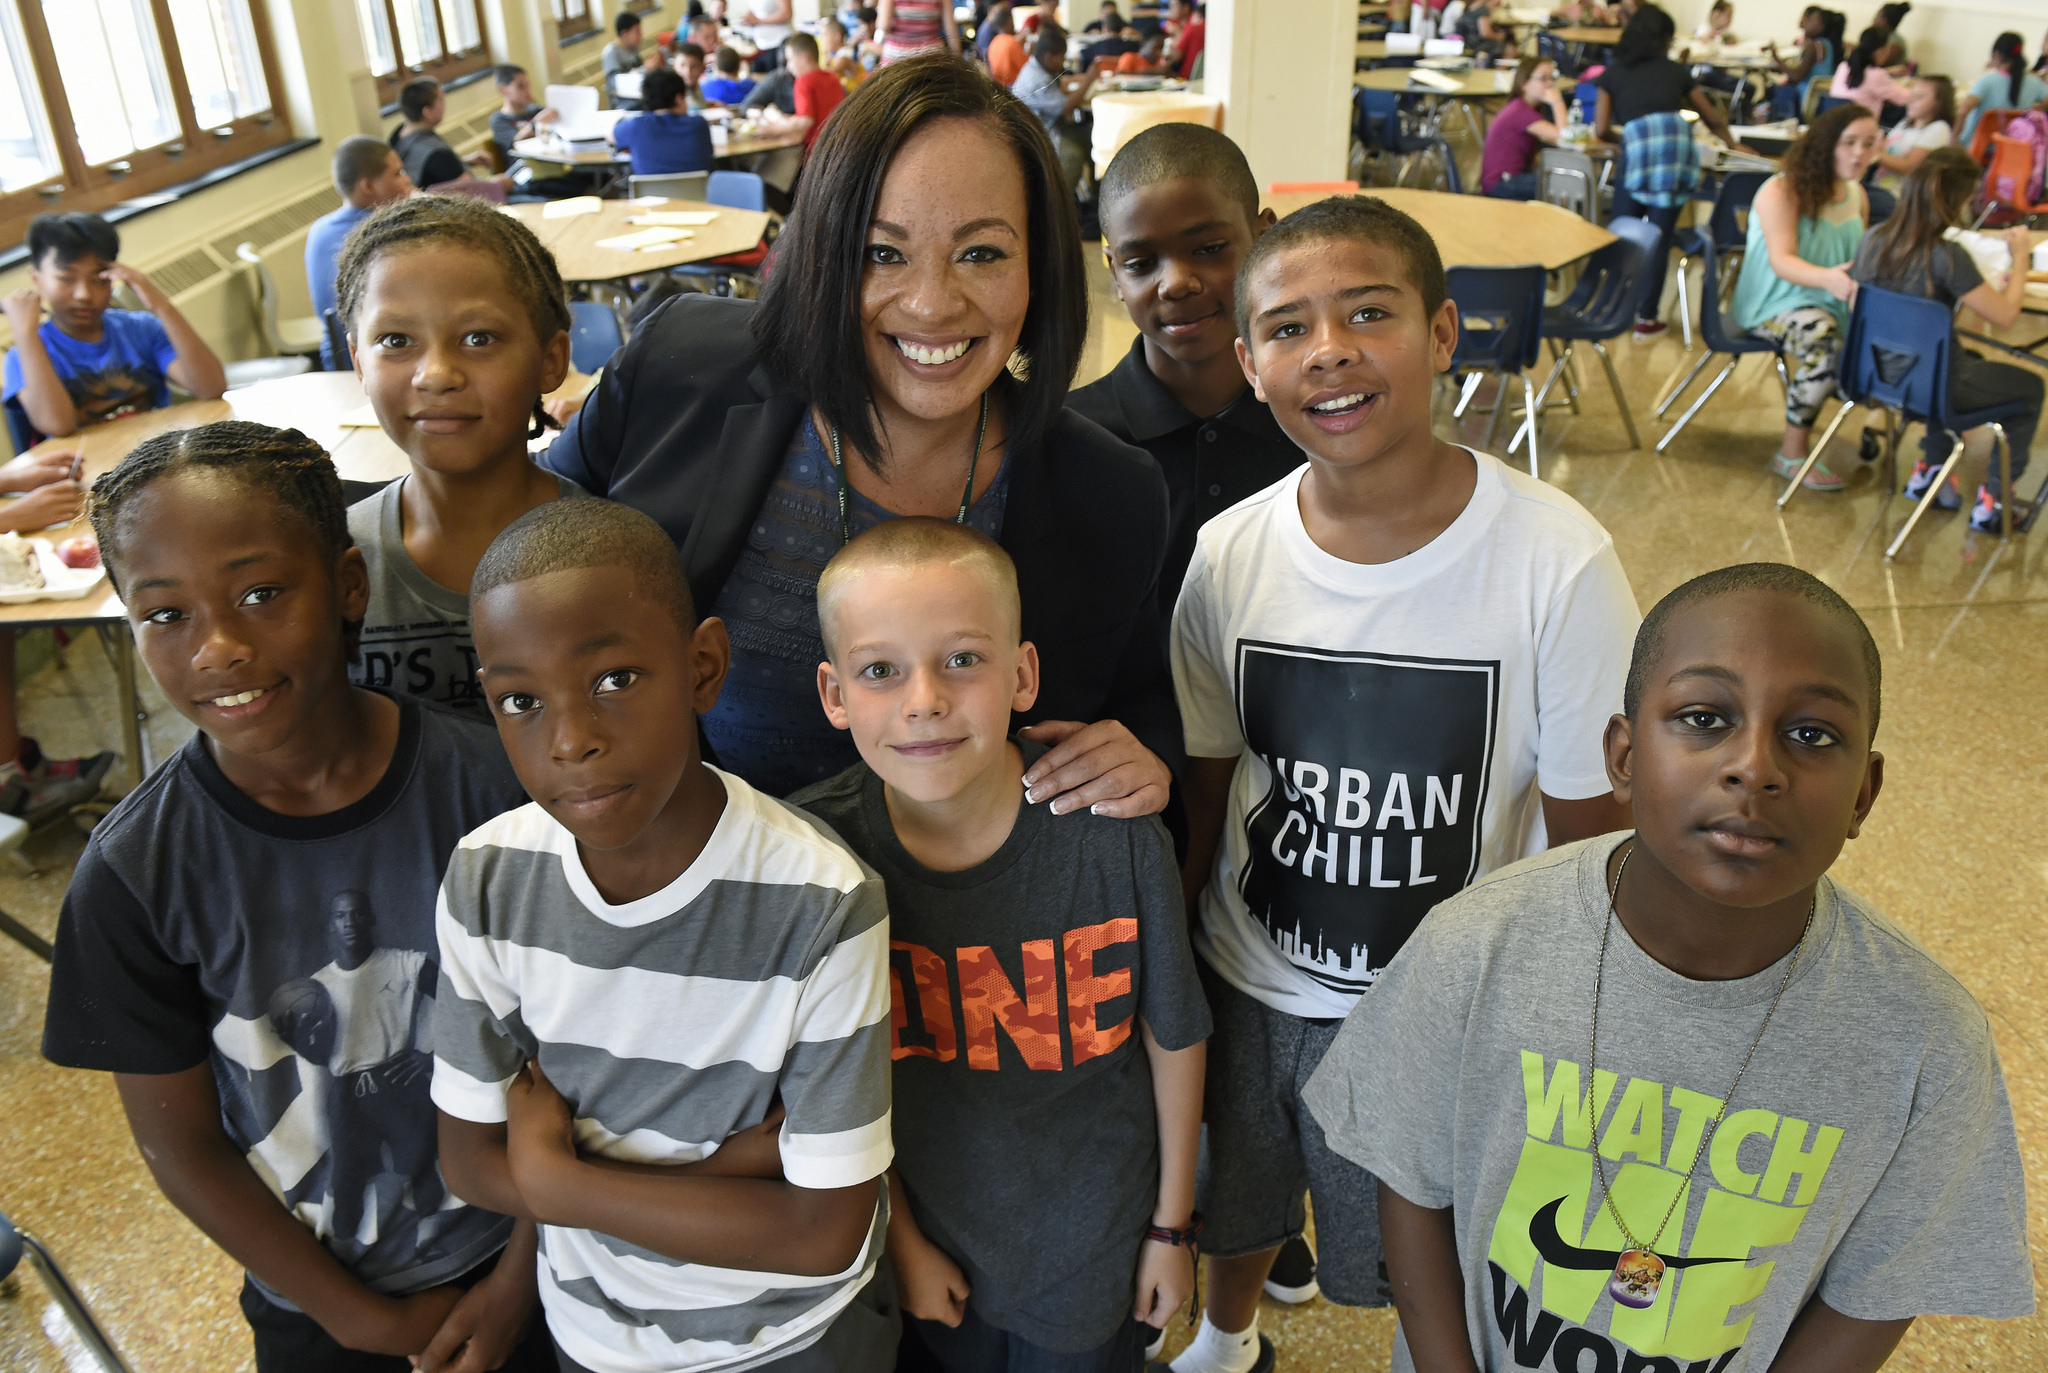 A teacher and her students at Grant Middle School in Syracuse, NY